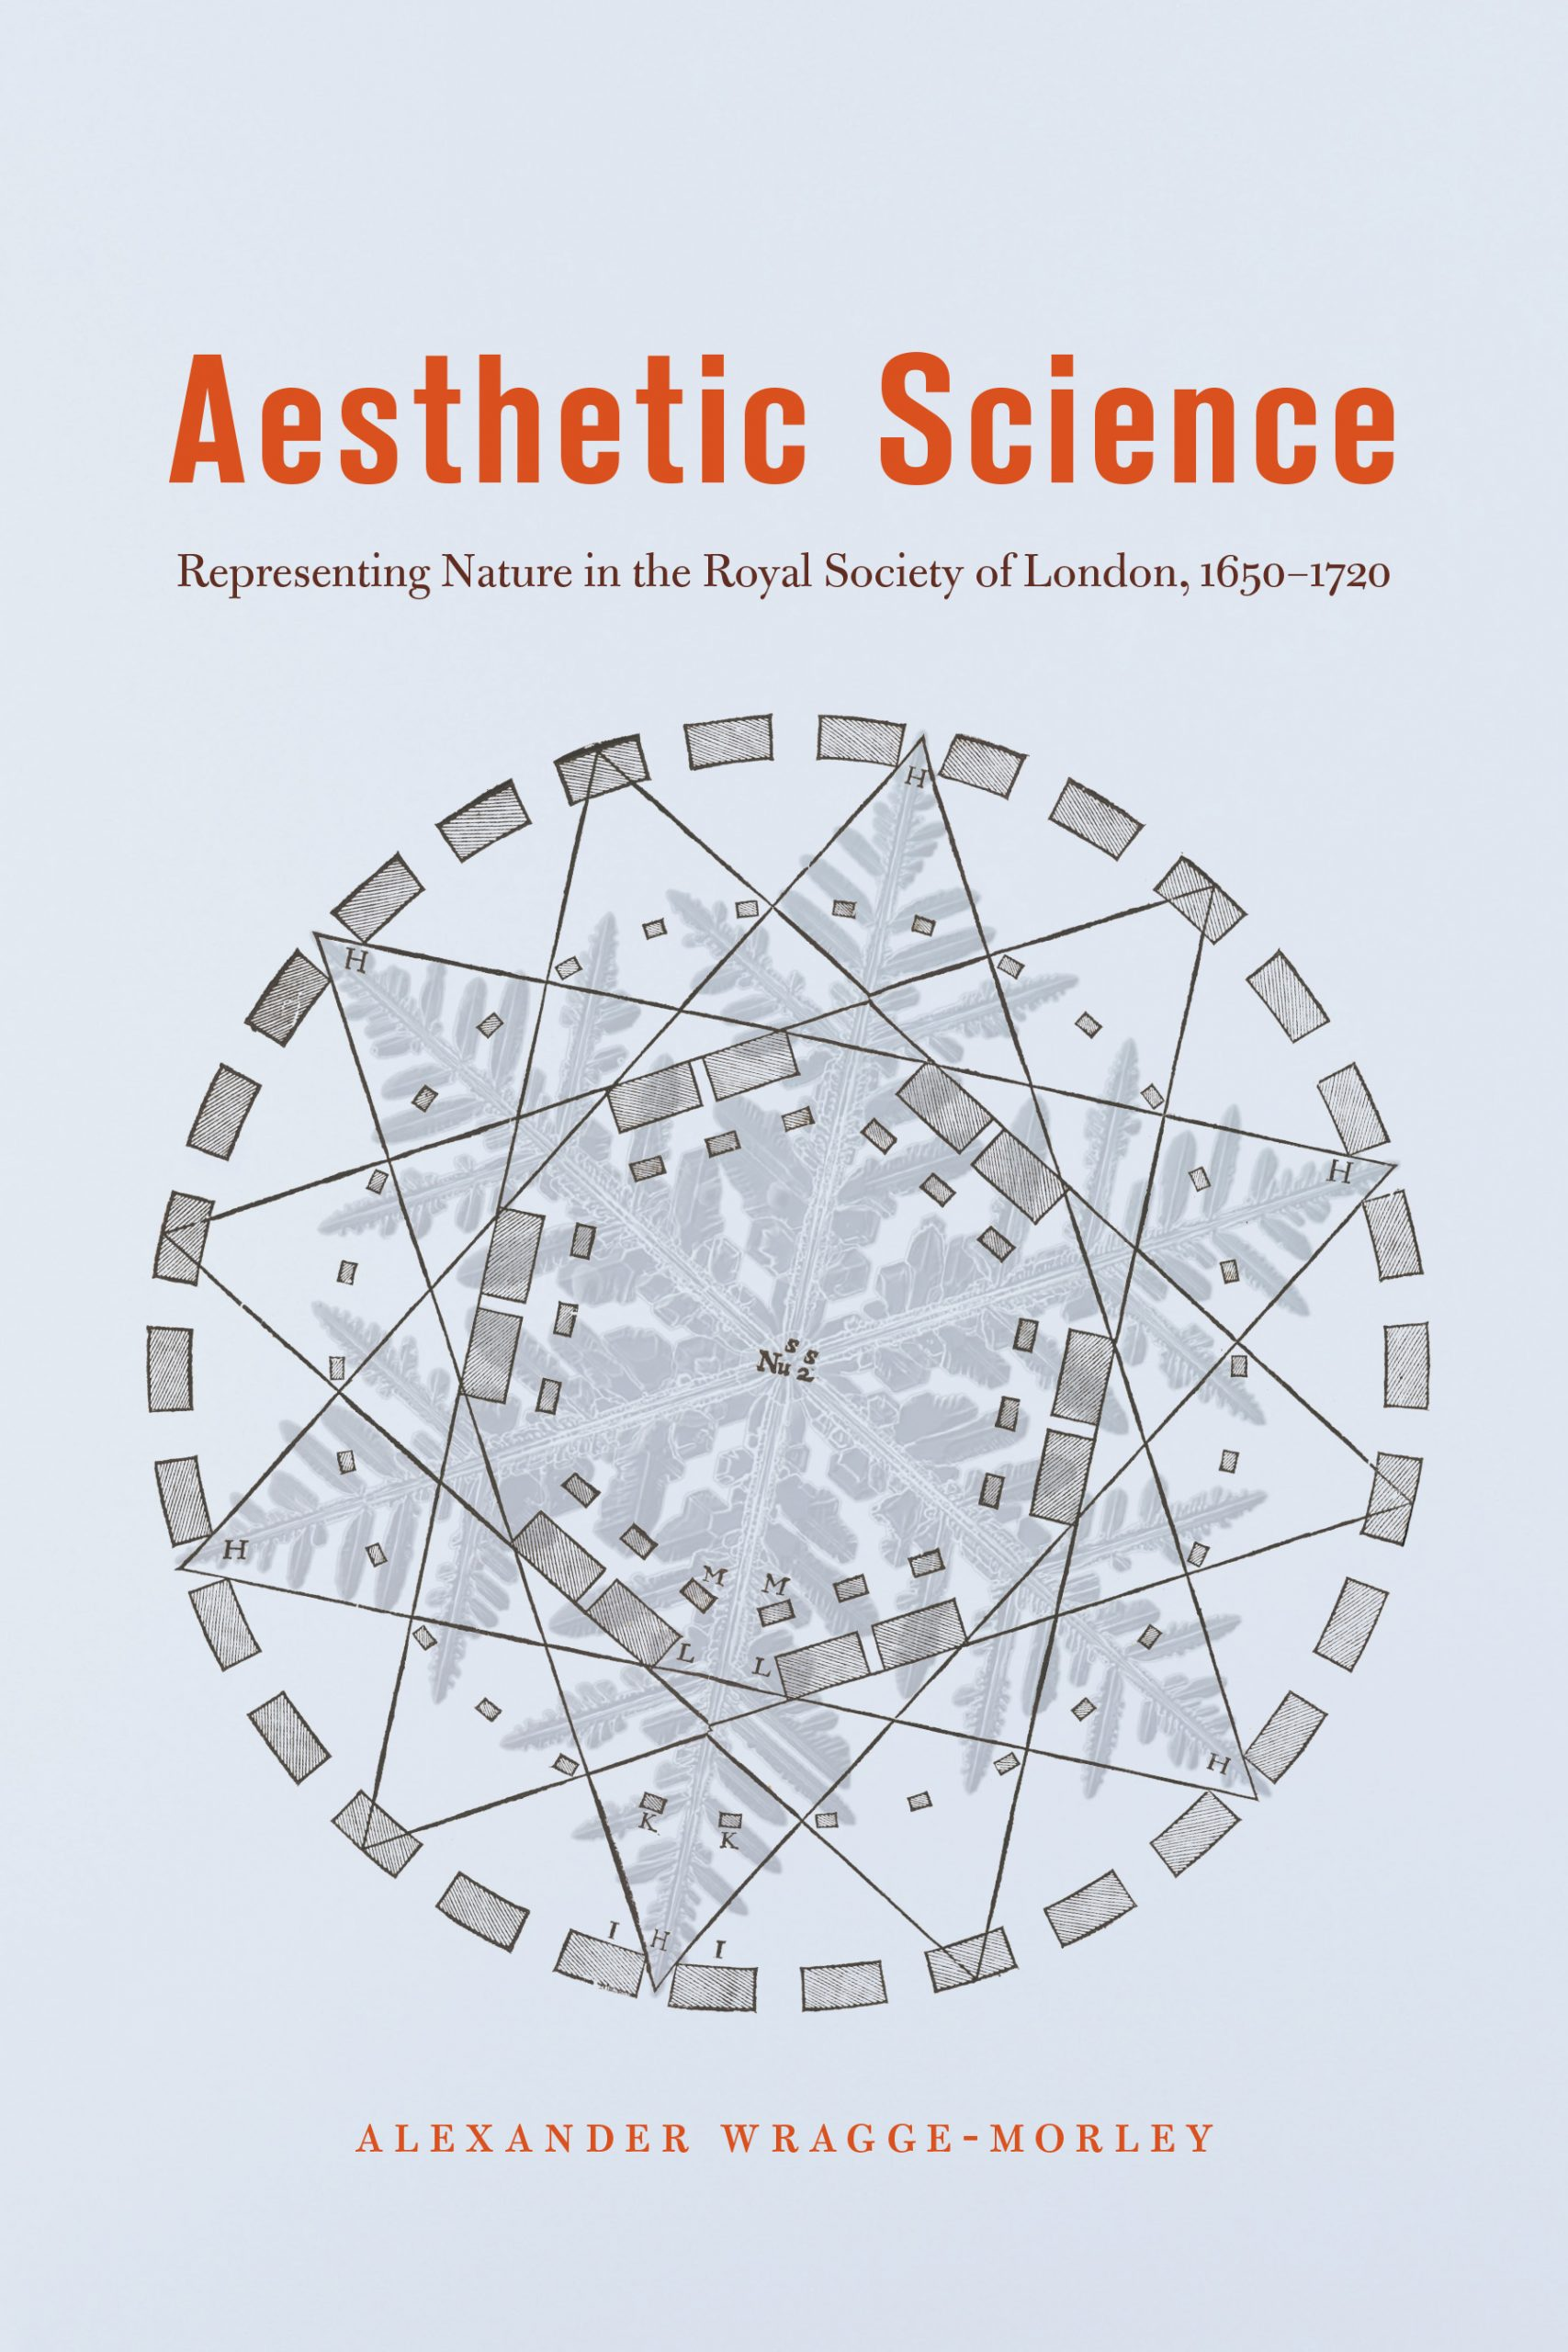 """5 Questions with Alexander Wragge-Morley, author of """"Aesthetic Science: Representing Nature in the Royal Society of London, 1650–1720"""""""